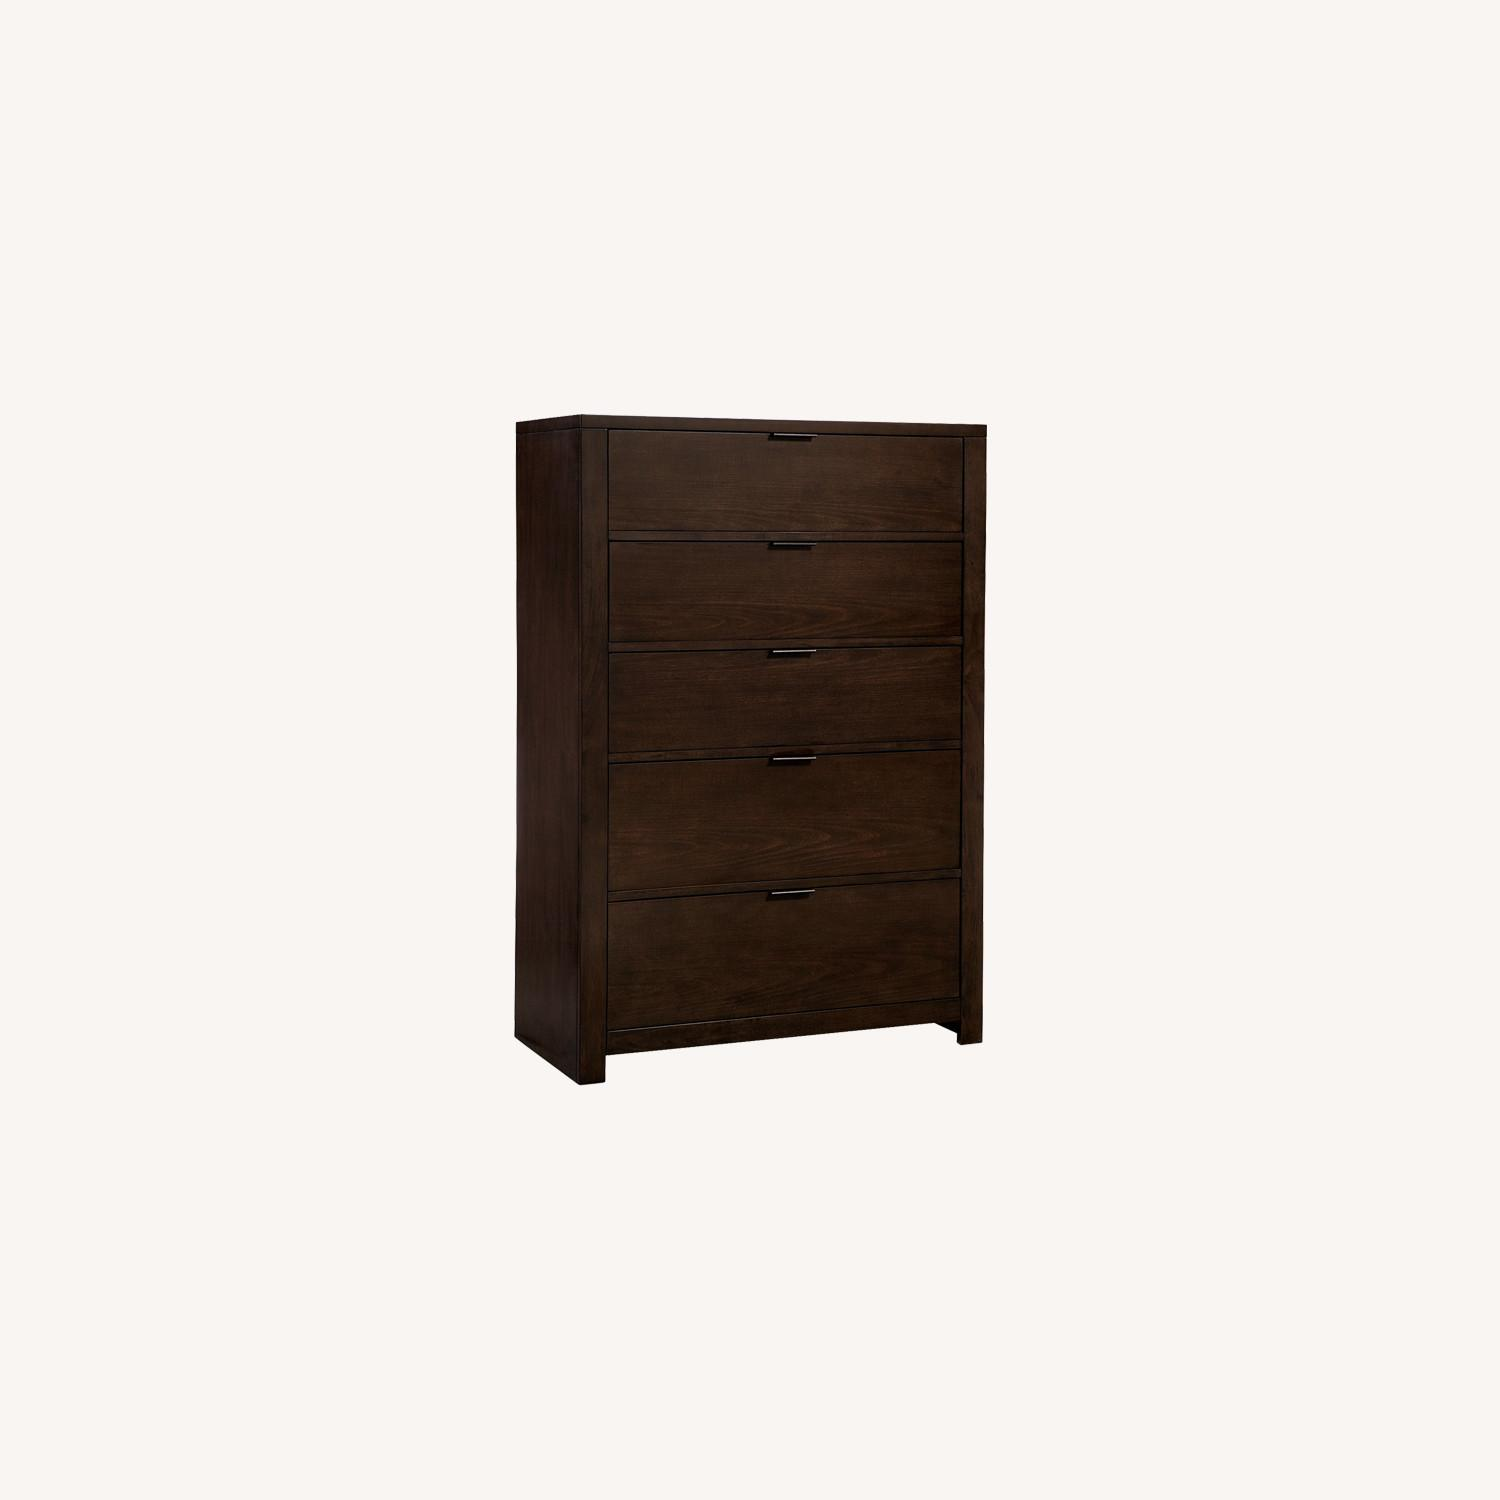 Macy's Tribeca 5 Drawer Chest - image-0